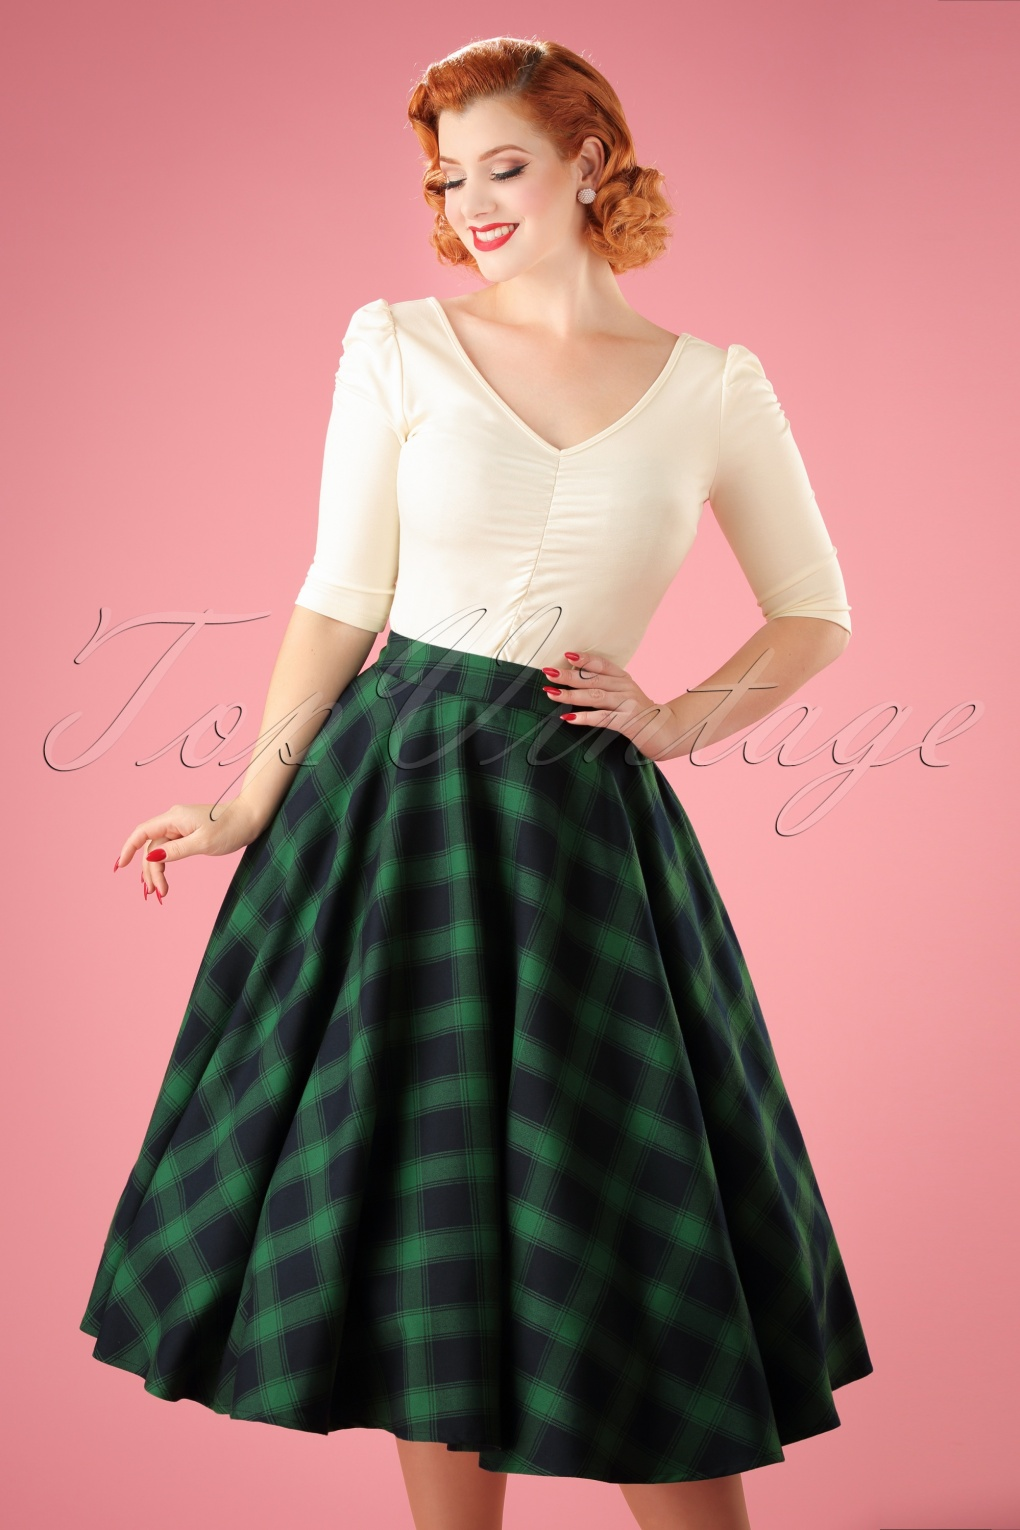 Retro Skirts: Vintage, Pencil, Circle, & Plus Sizes 50s Marienne Full Swing Skirt in Green £38.46 AT vintagedancer.com